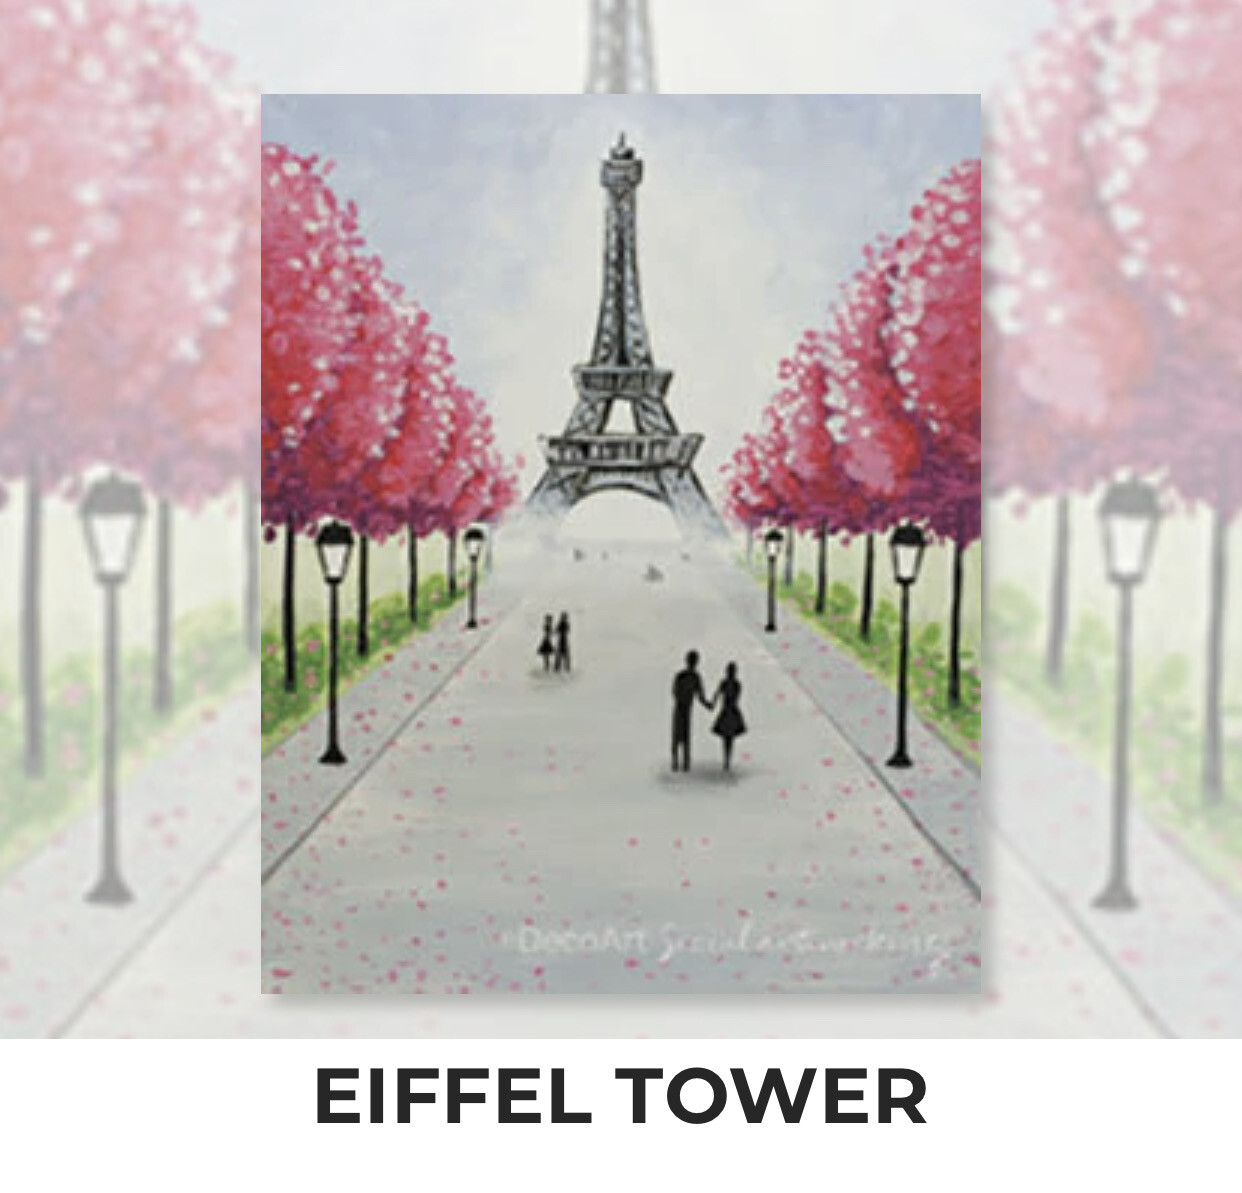 Eiffel Tower ADULT Acrylic Paint On Canvas DIY Art Kit - 3 Week Special Order